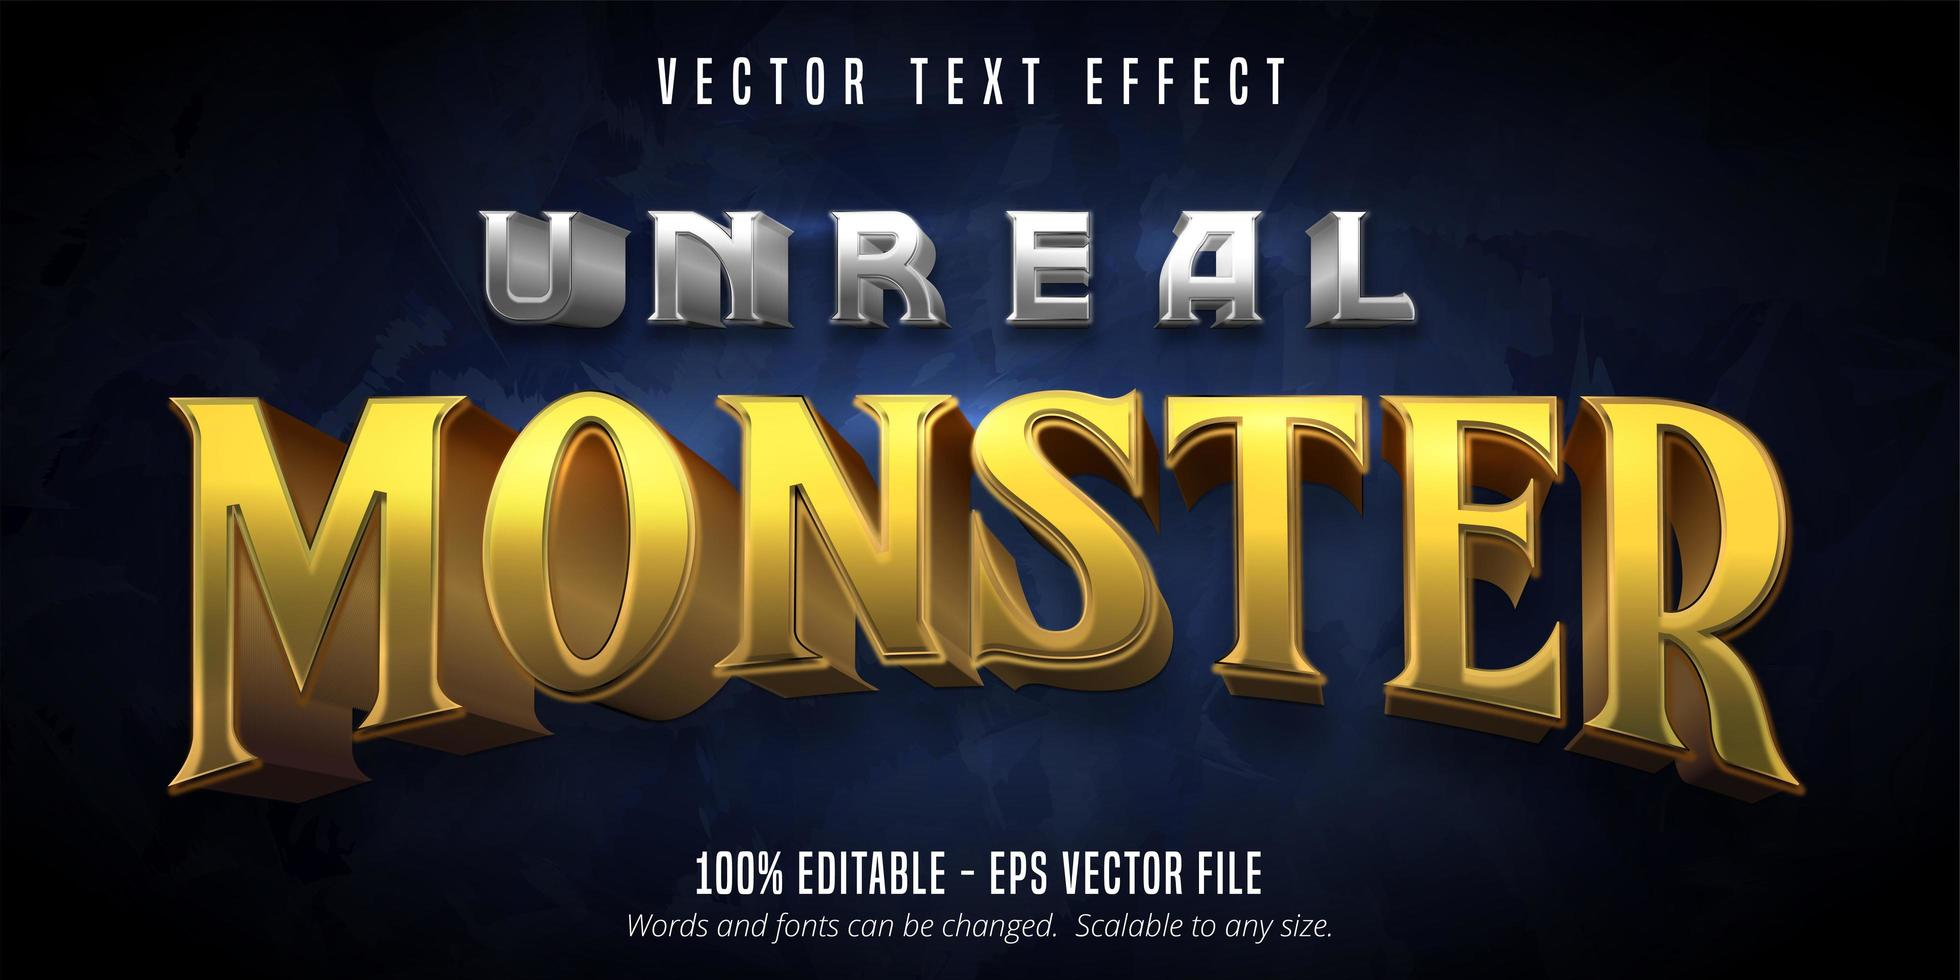 Unreal monster metallic game style text effect vector